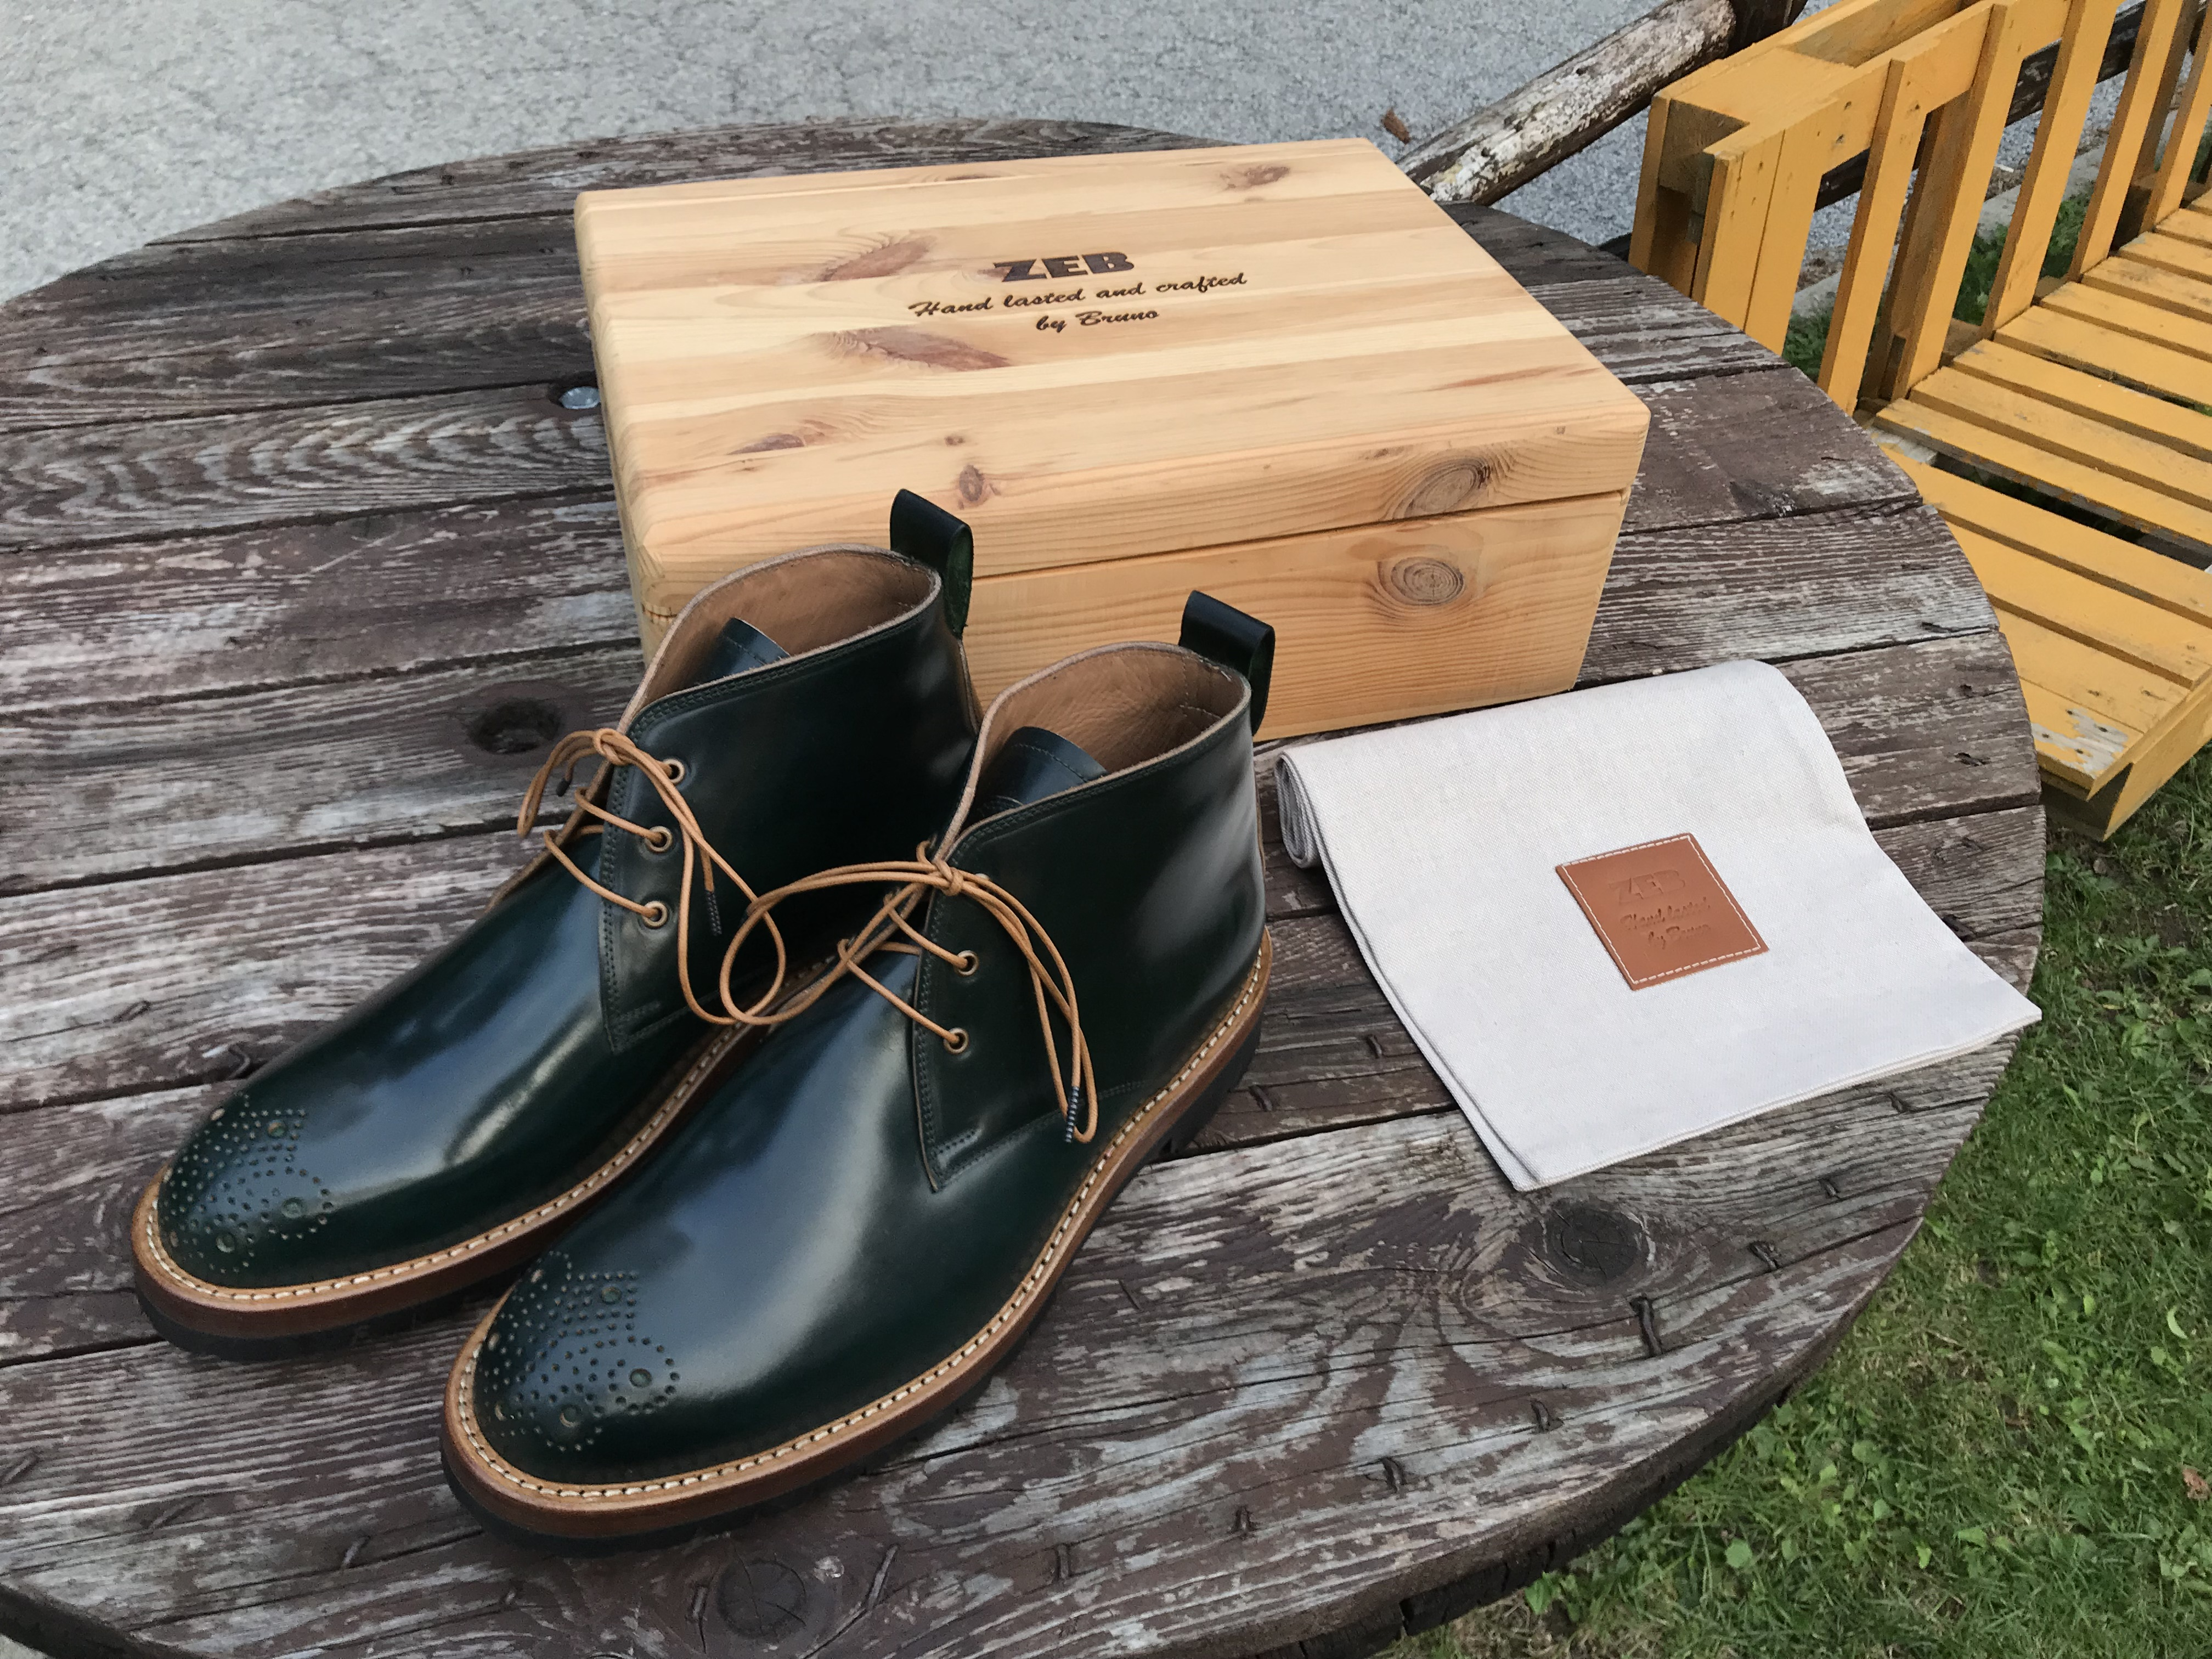 Leather-Boots-Chukka-Shell-Green2-Gal4